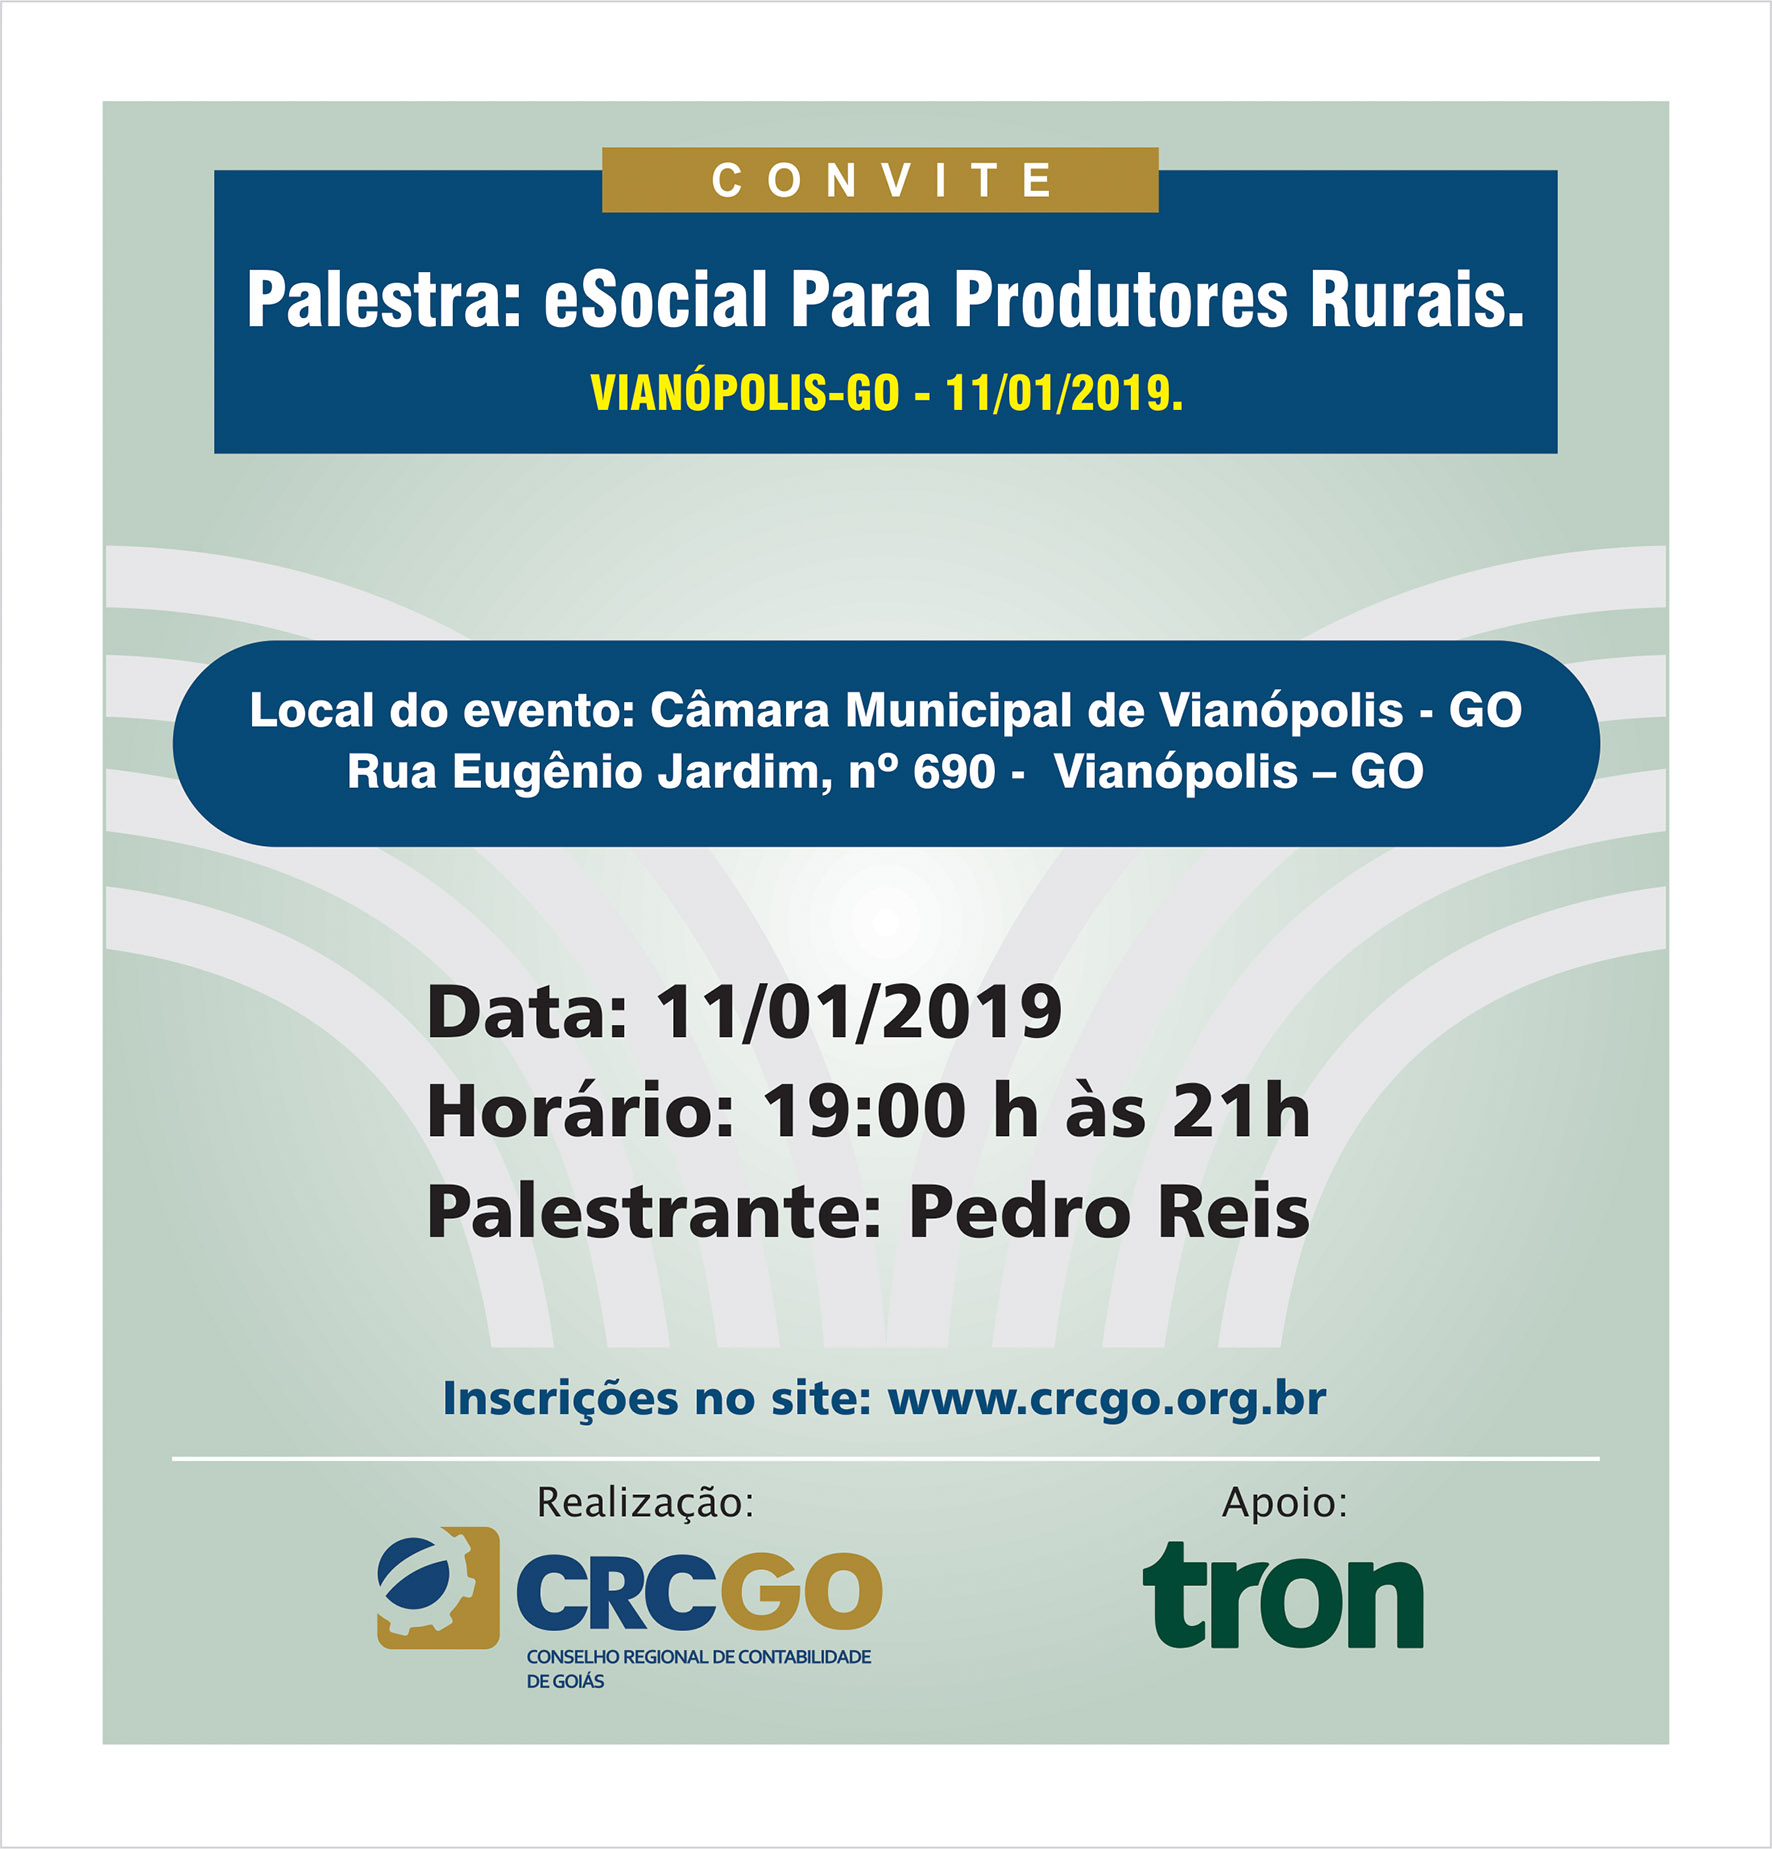 POST CONVITE PRODUTOR RURAL-CRCGO-2019- Layout final-ok